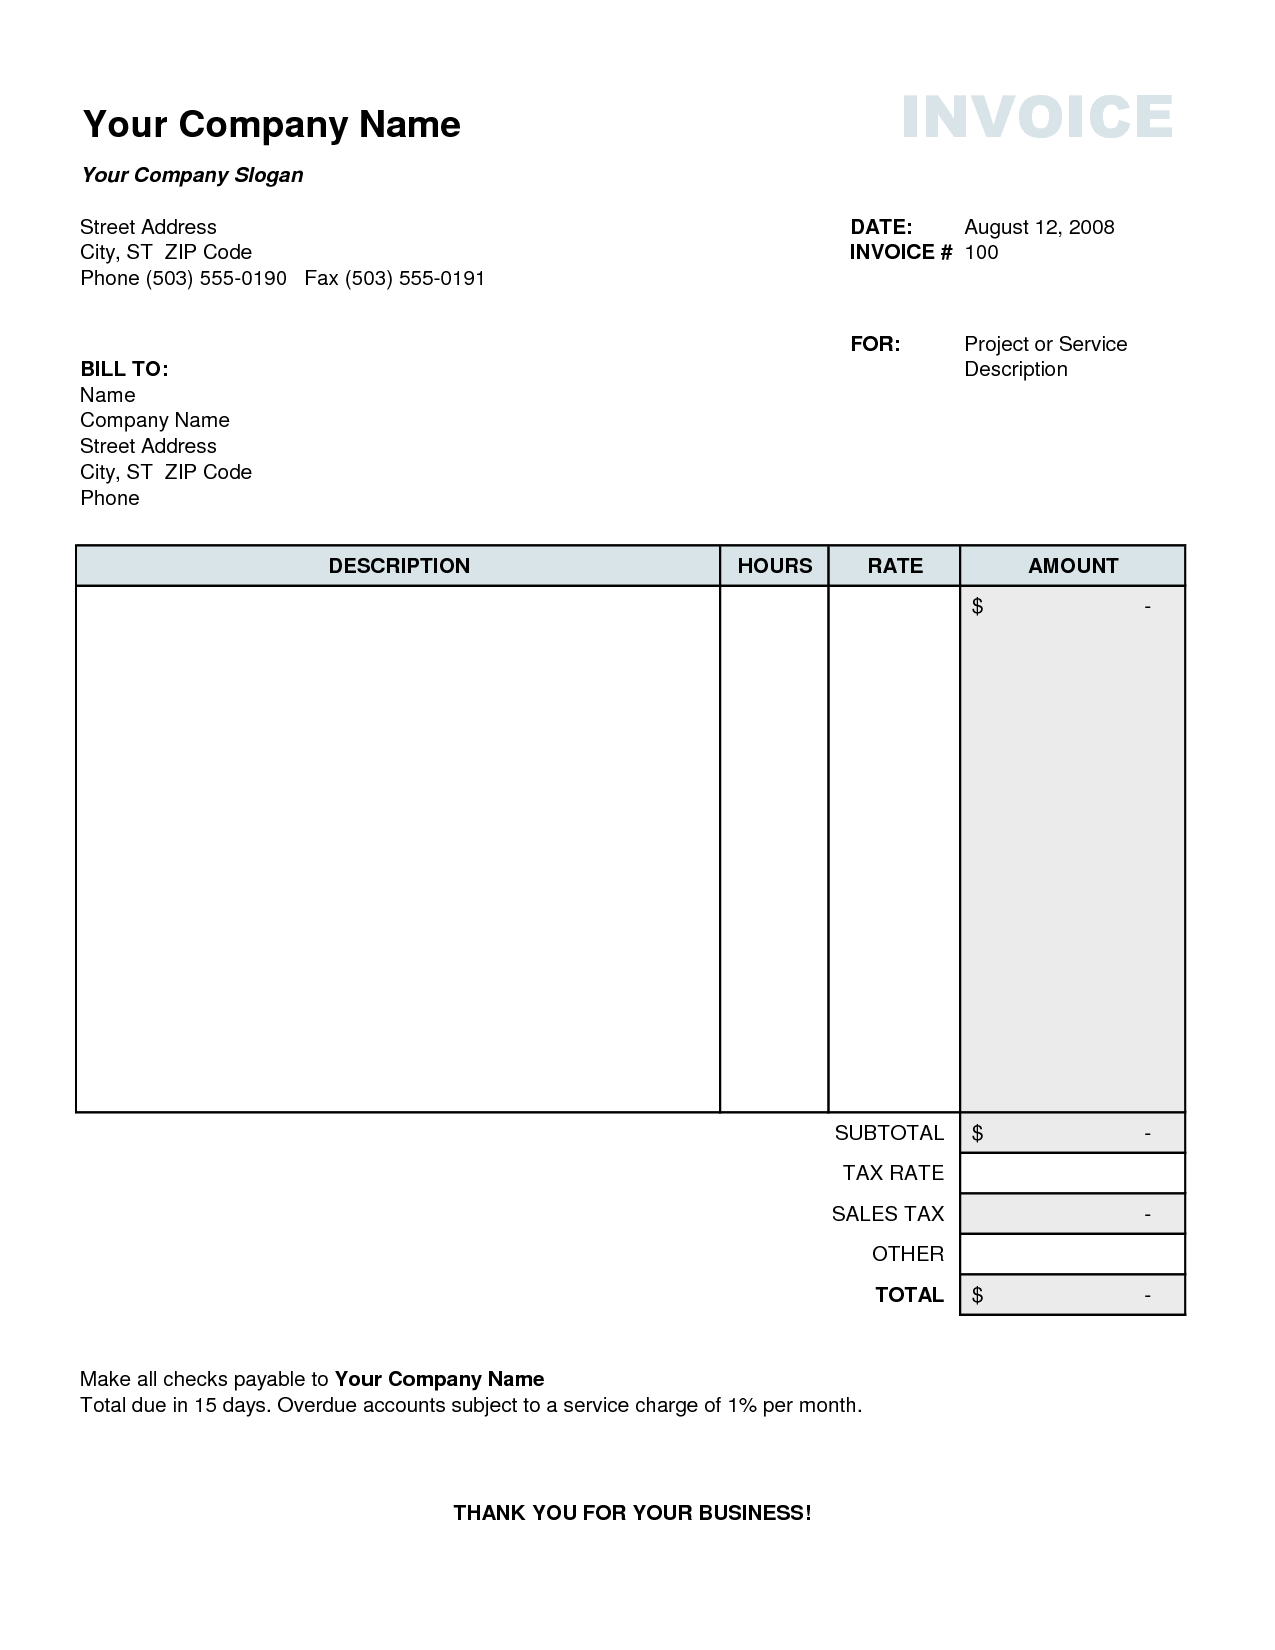 Invoice Template Excel Australia Kevincoynepagetk - How do i create an invoice for service business